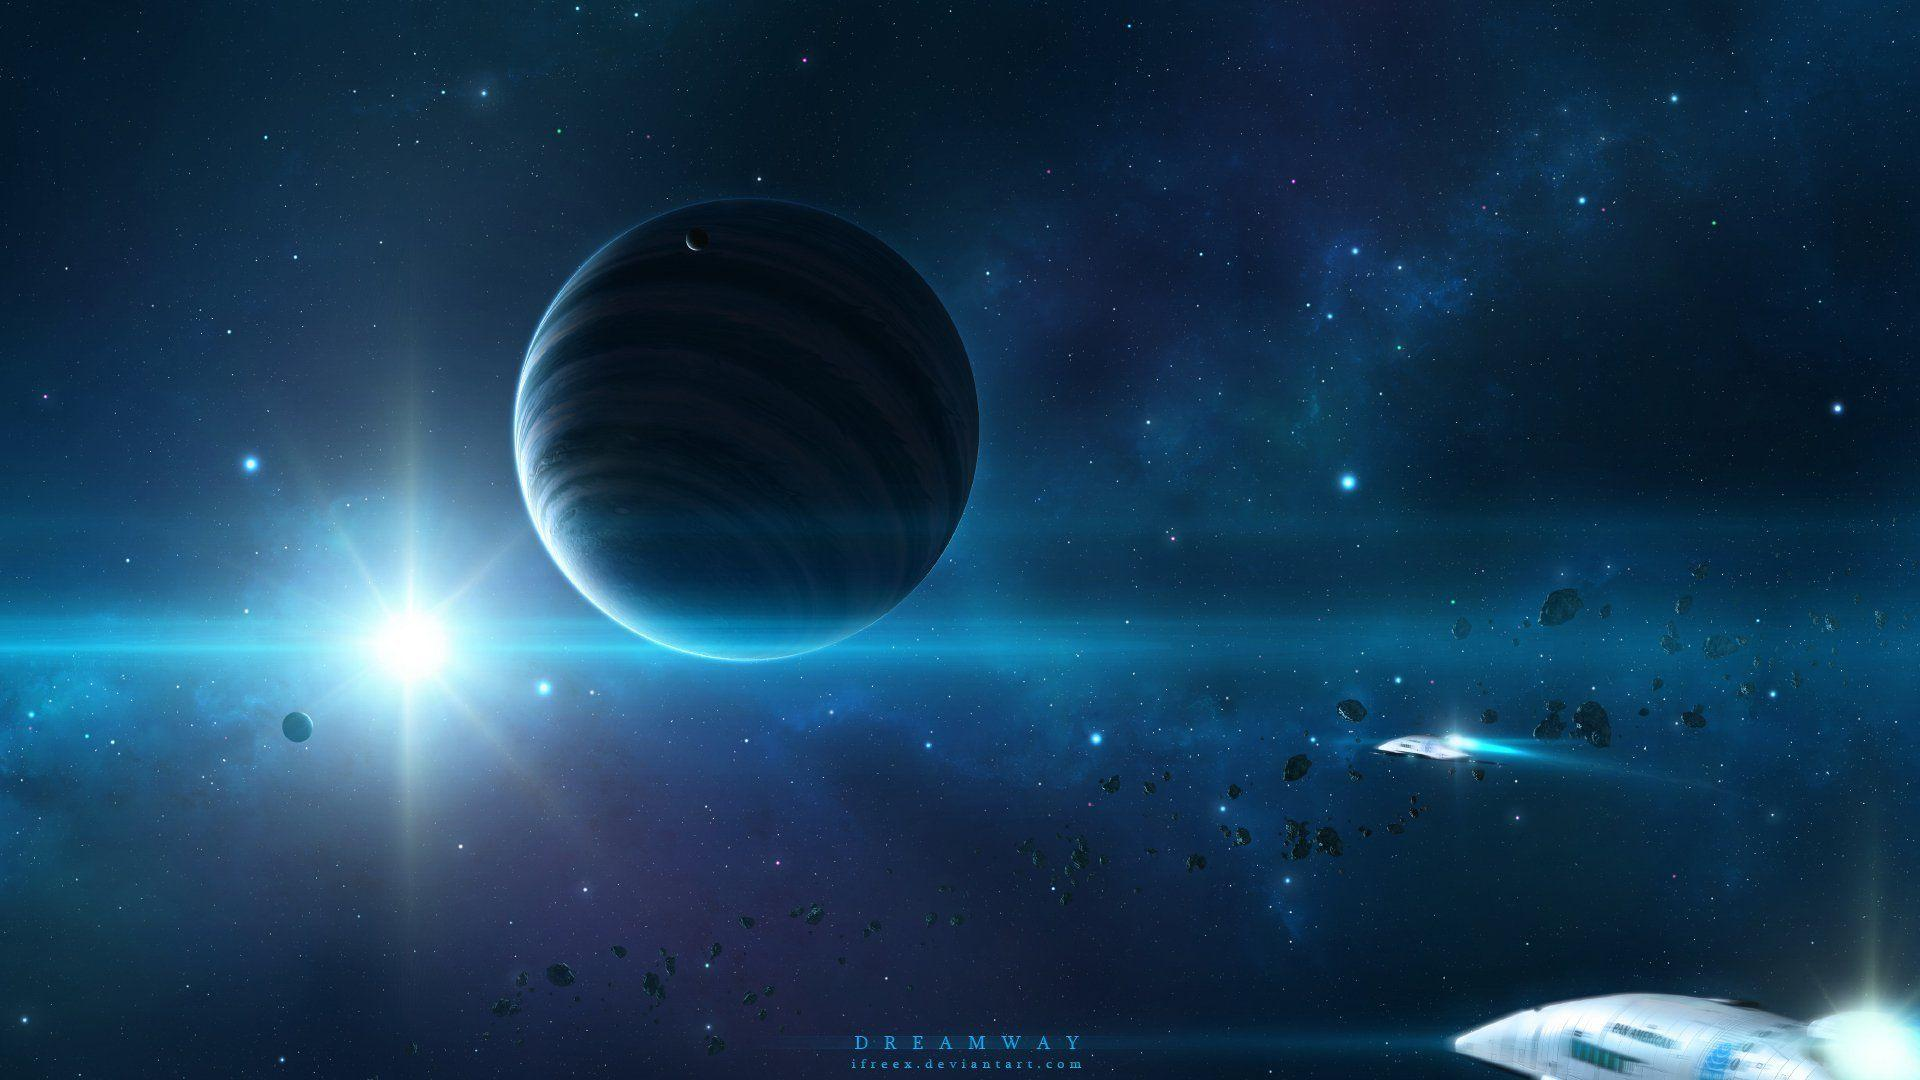 space star spacecraft art planetv space art starlight planet HD